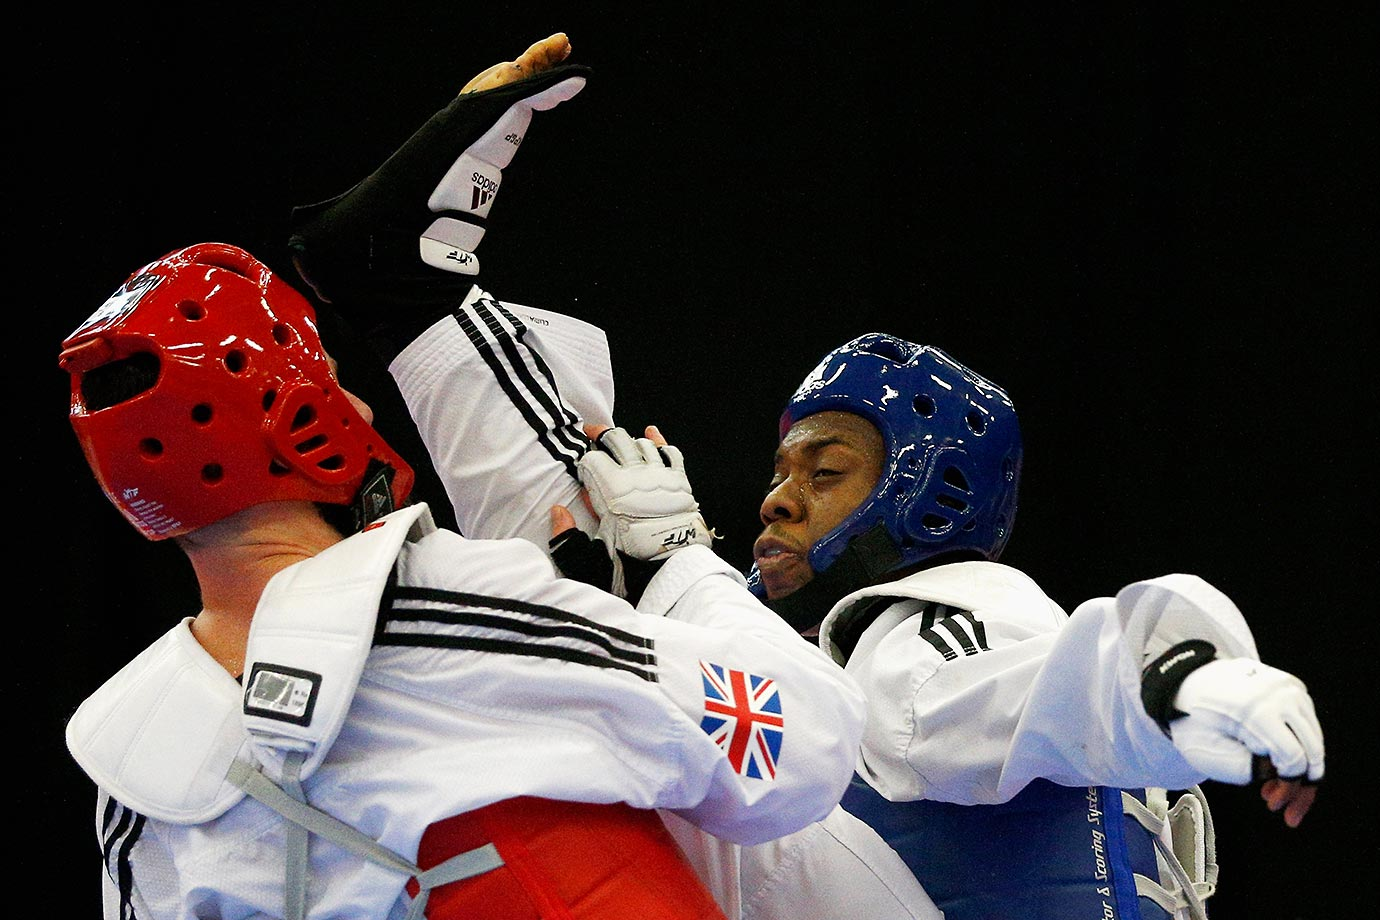 Lutalo Massop Muhammad (blue) and Damon Sansum compete in the World Taekwondo Grand Prix in England.